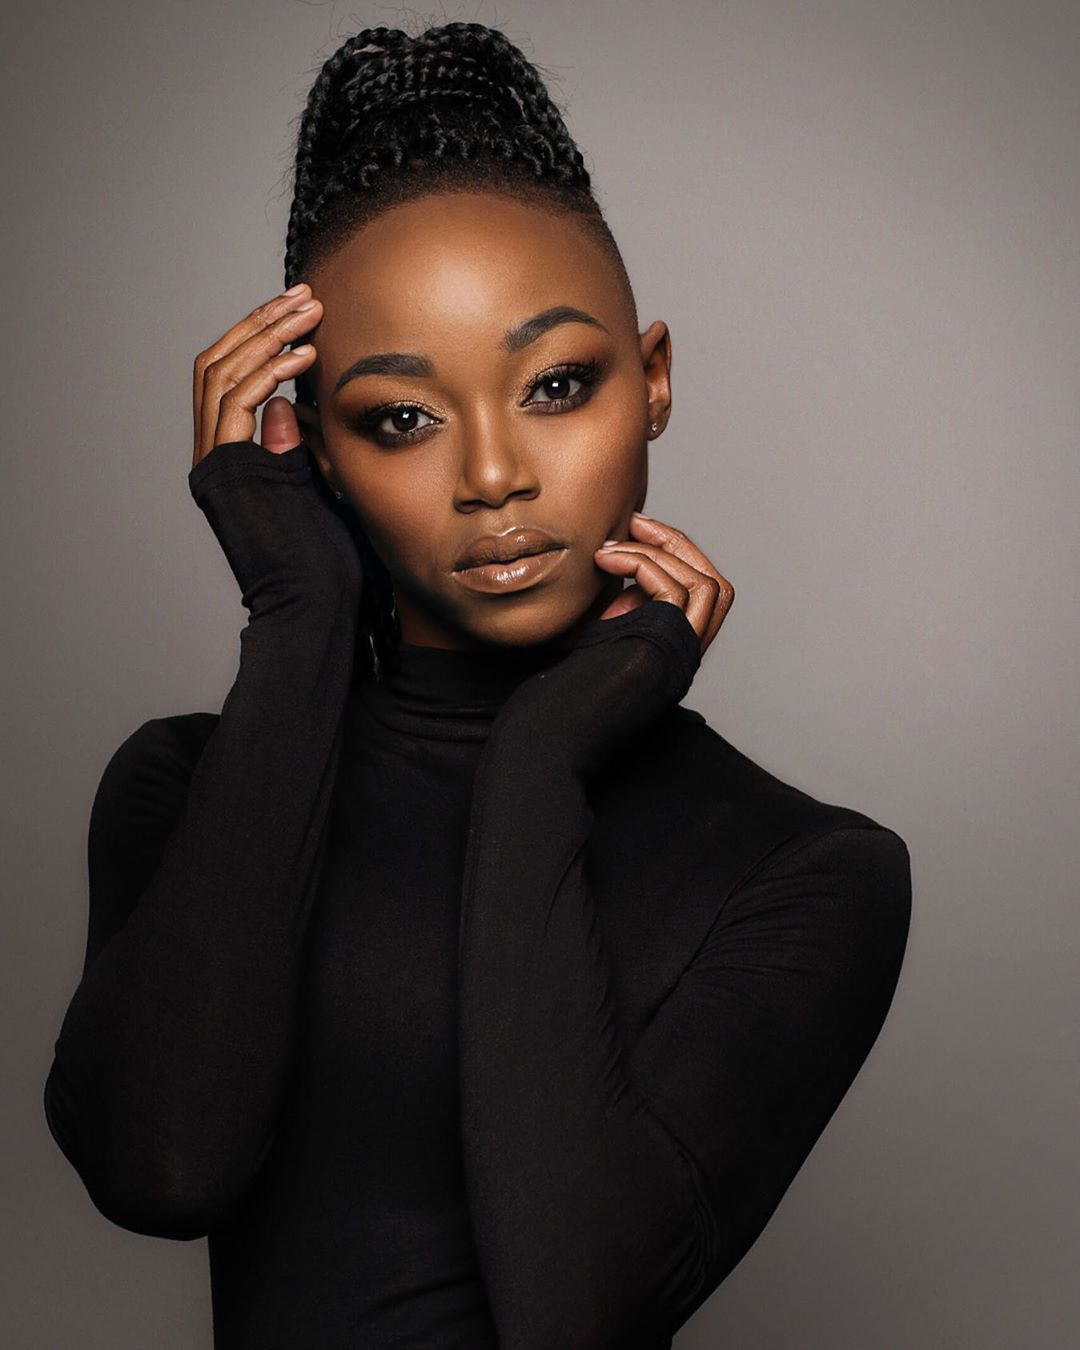 candidatas a miss south africa 2020. IyZfyE